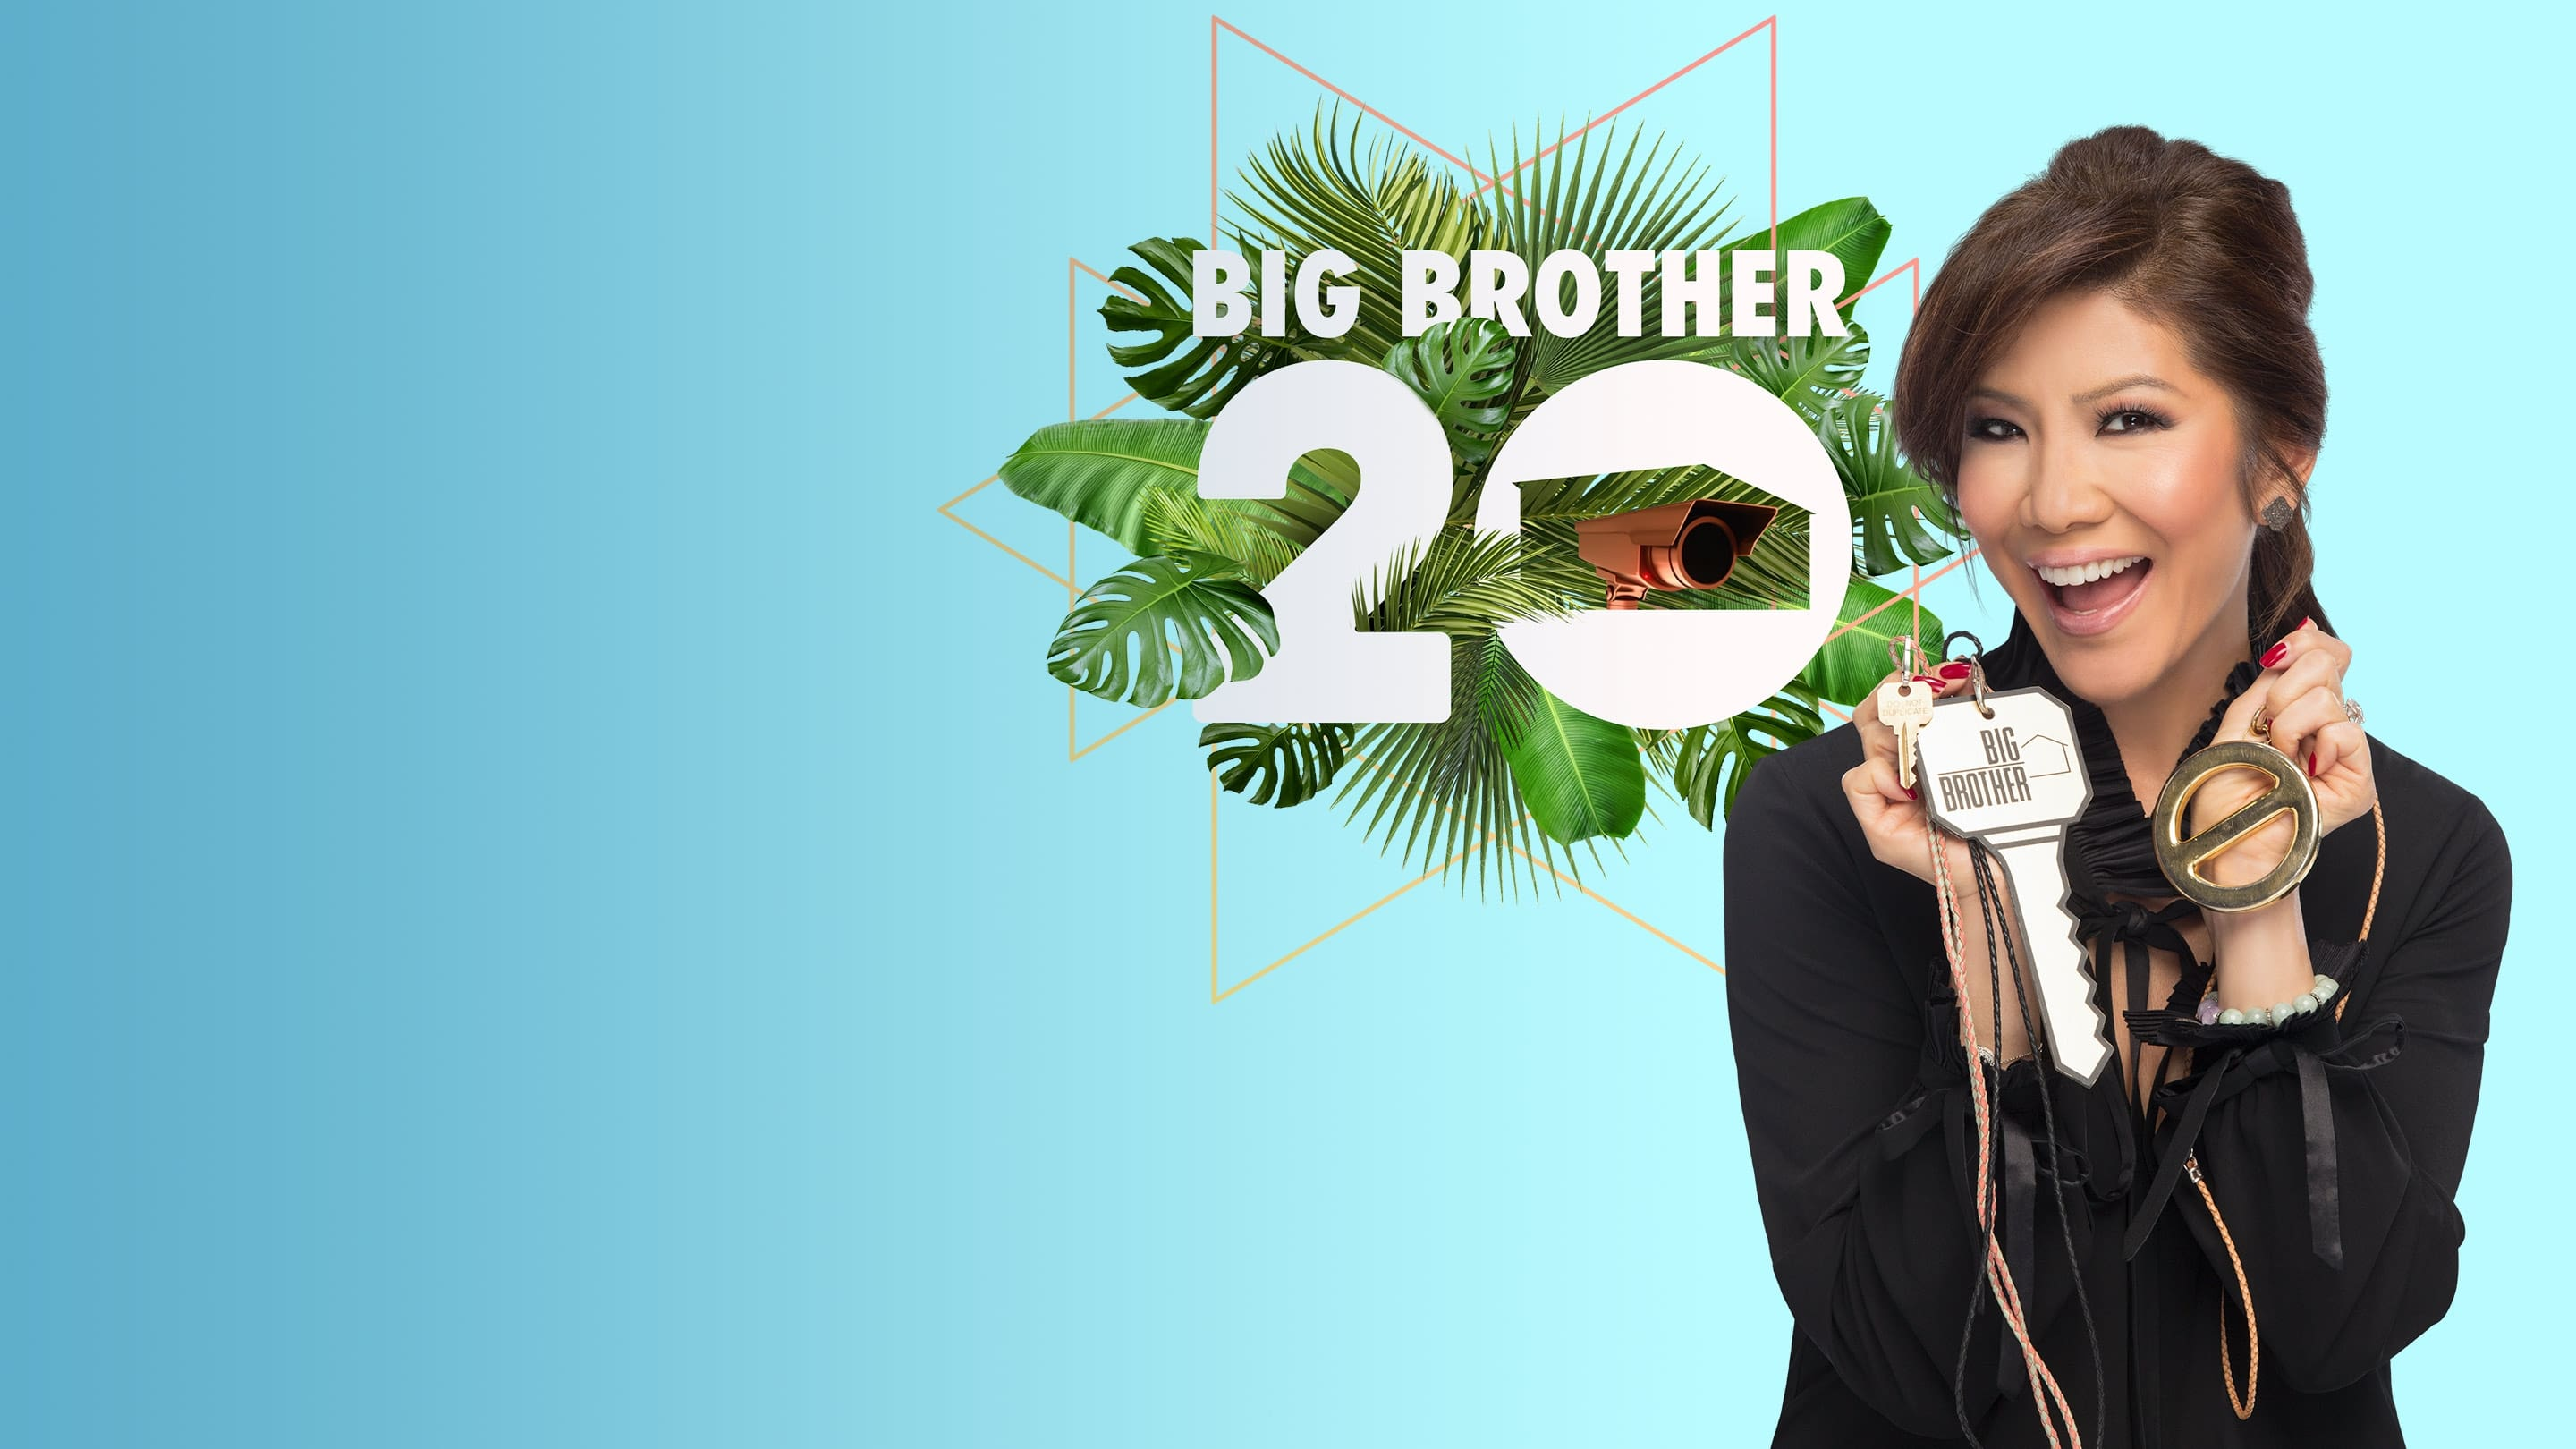 Big Brother - Season 11